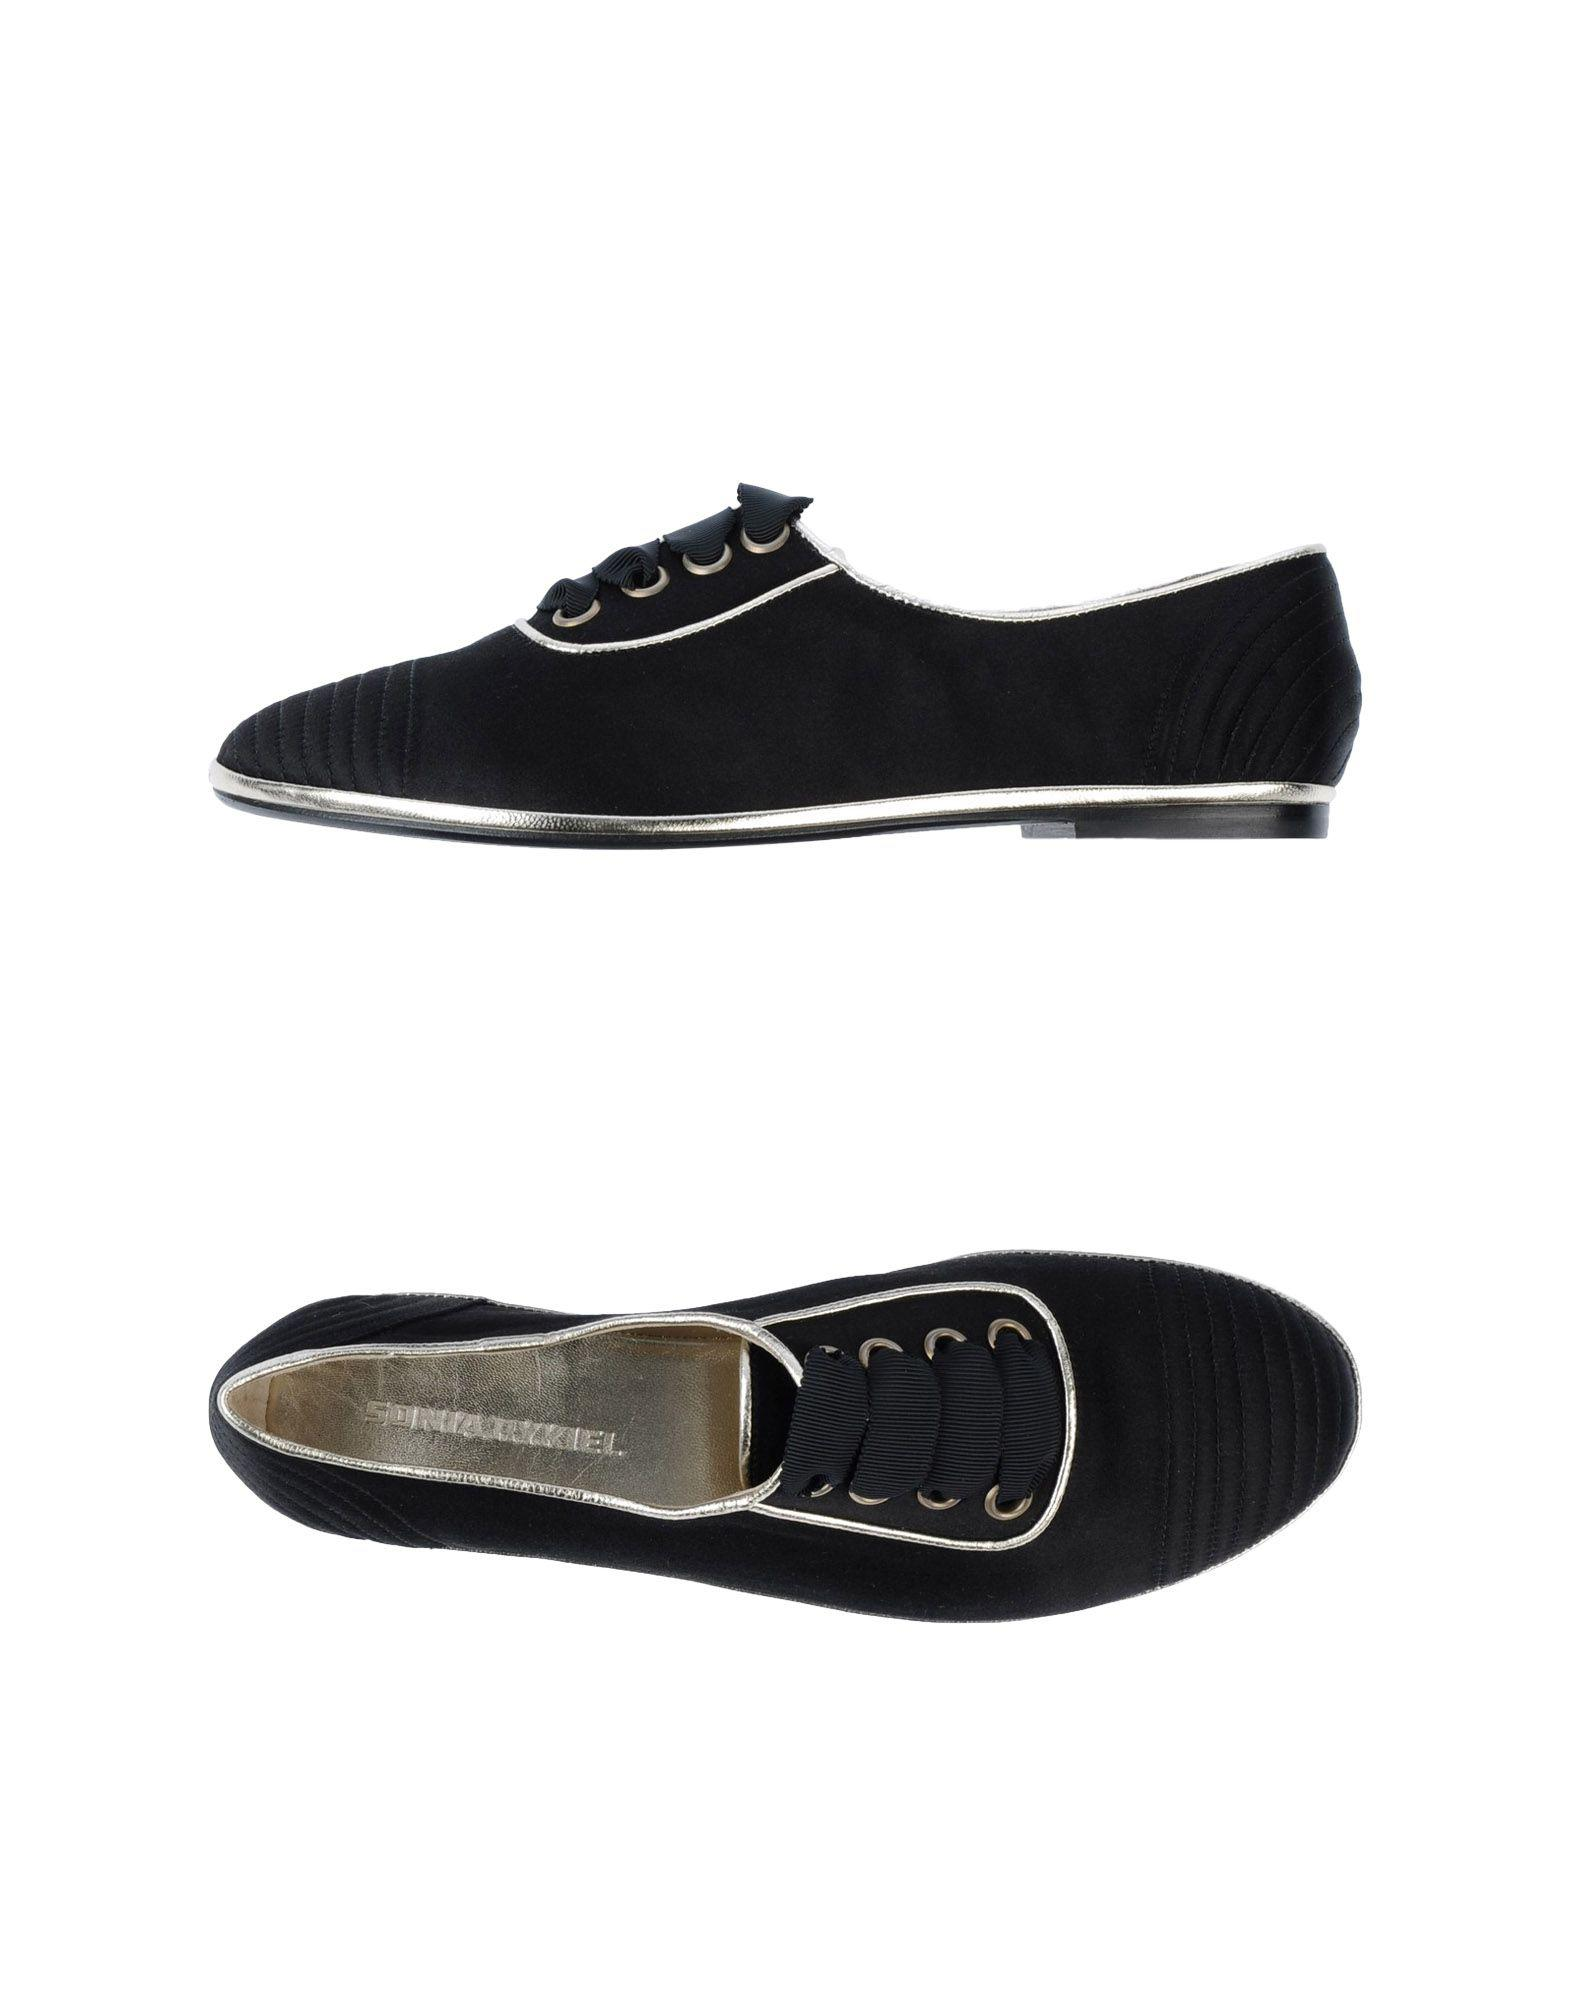 Good Selling Buy Cheap Clearance Store FOOTWEAR - Lace-up shoes Sonia Rykiel Free Shipping Real Sexy Sport High Quality Cheap Online XYxTWDtCv5